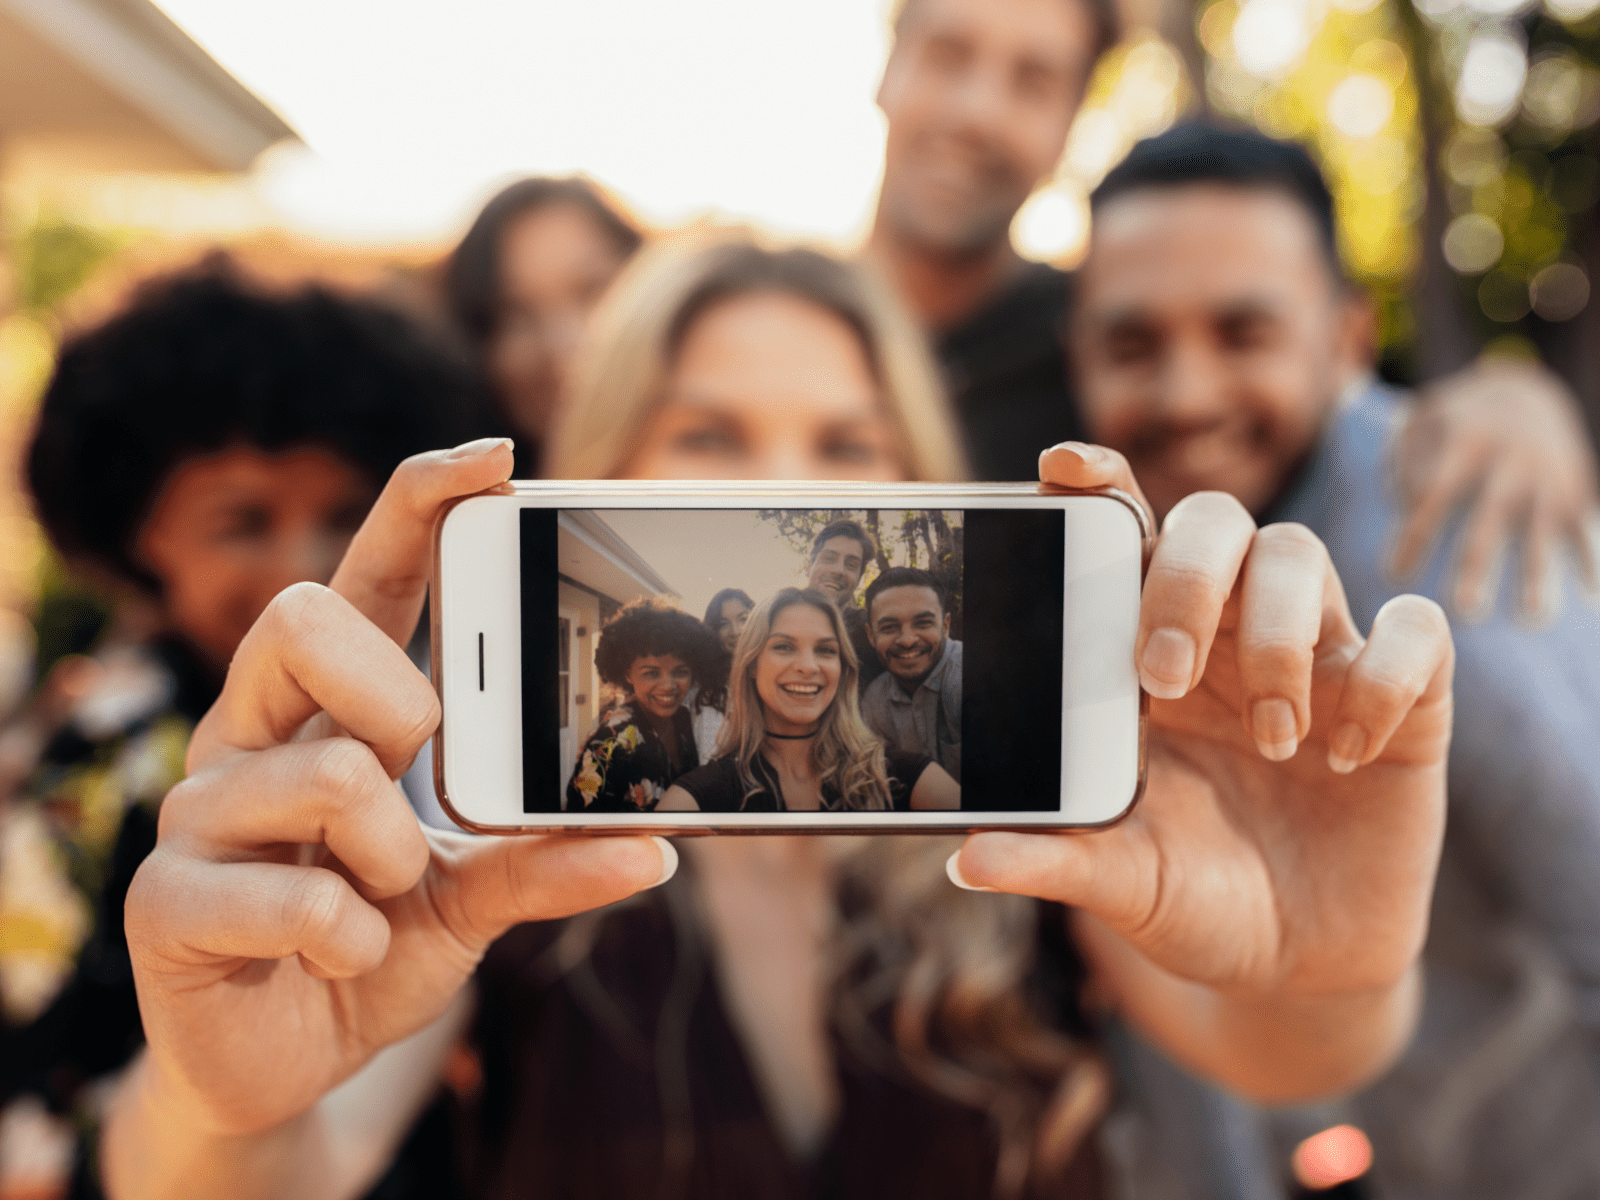 Friends taking a group selfie at party | Lifestyle Details